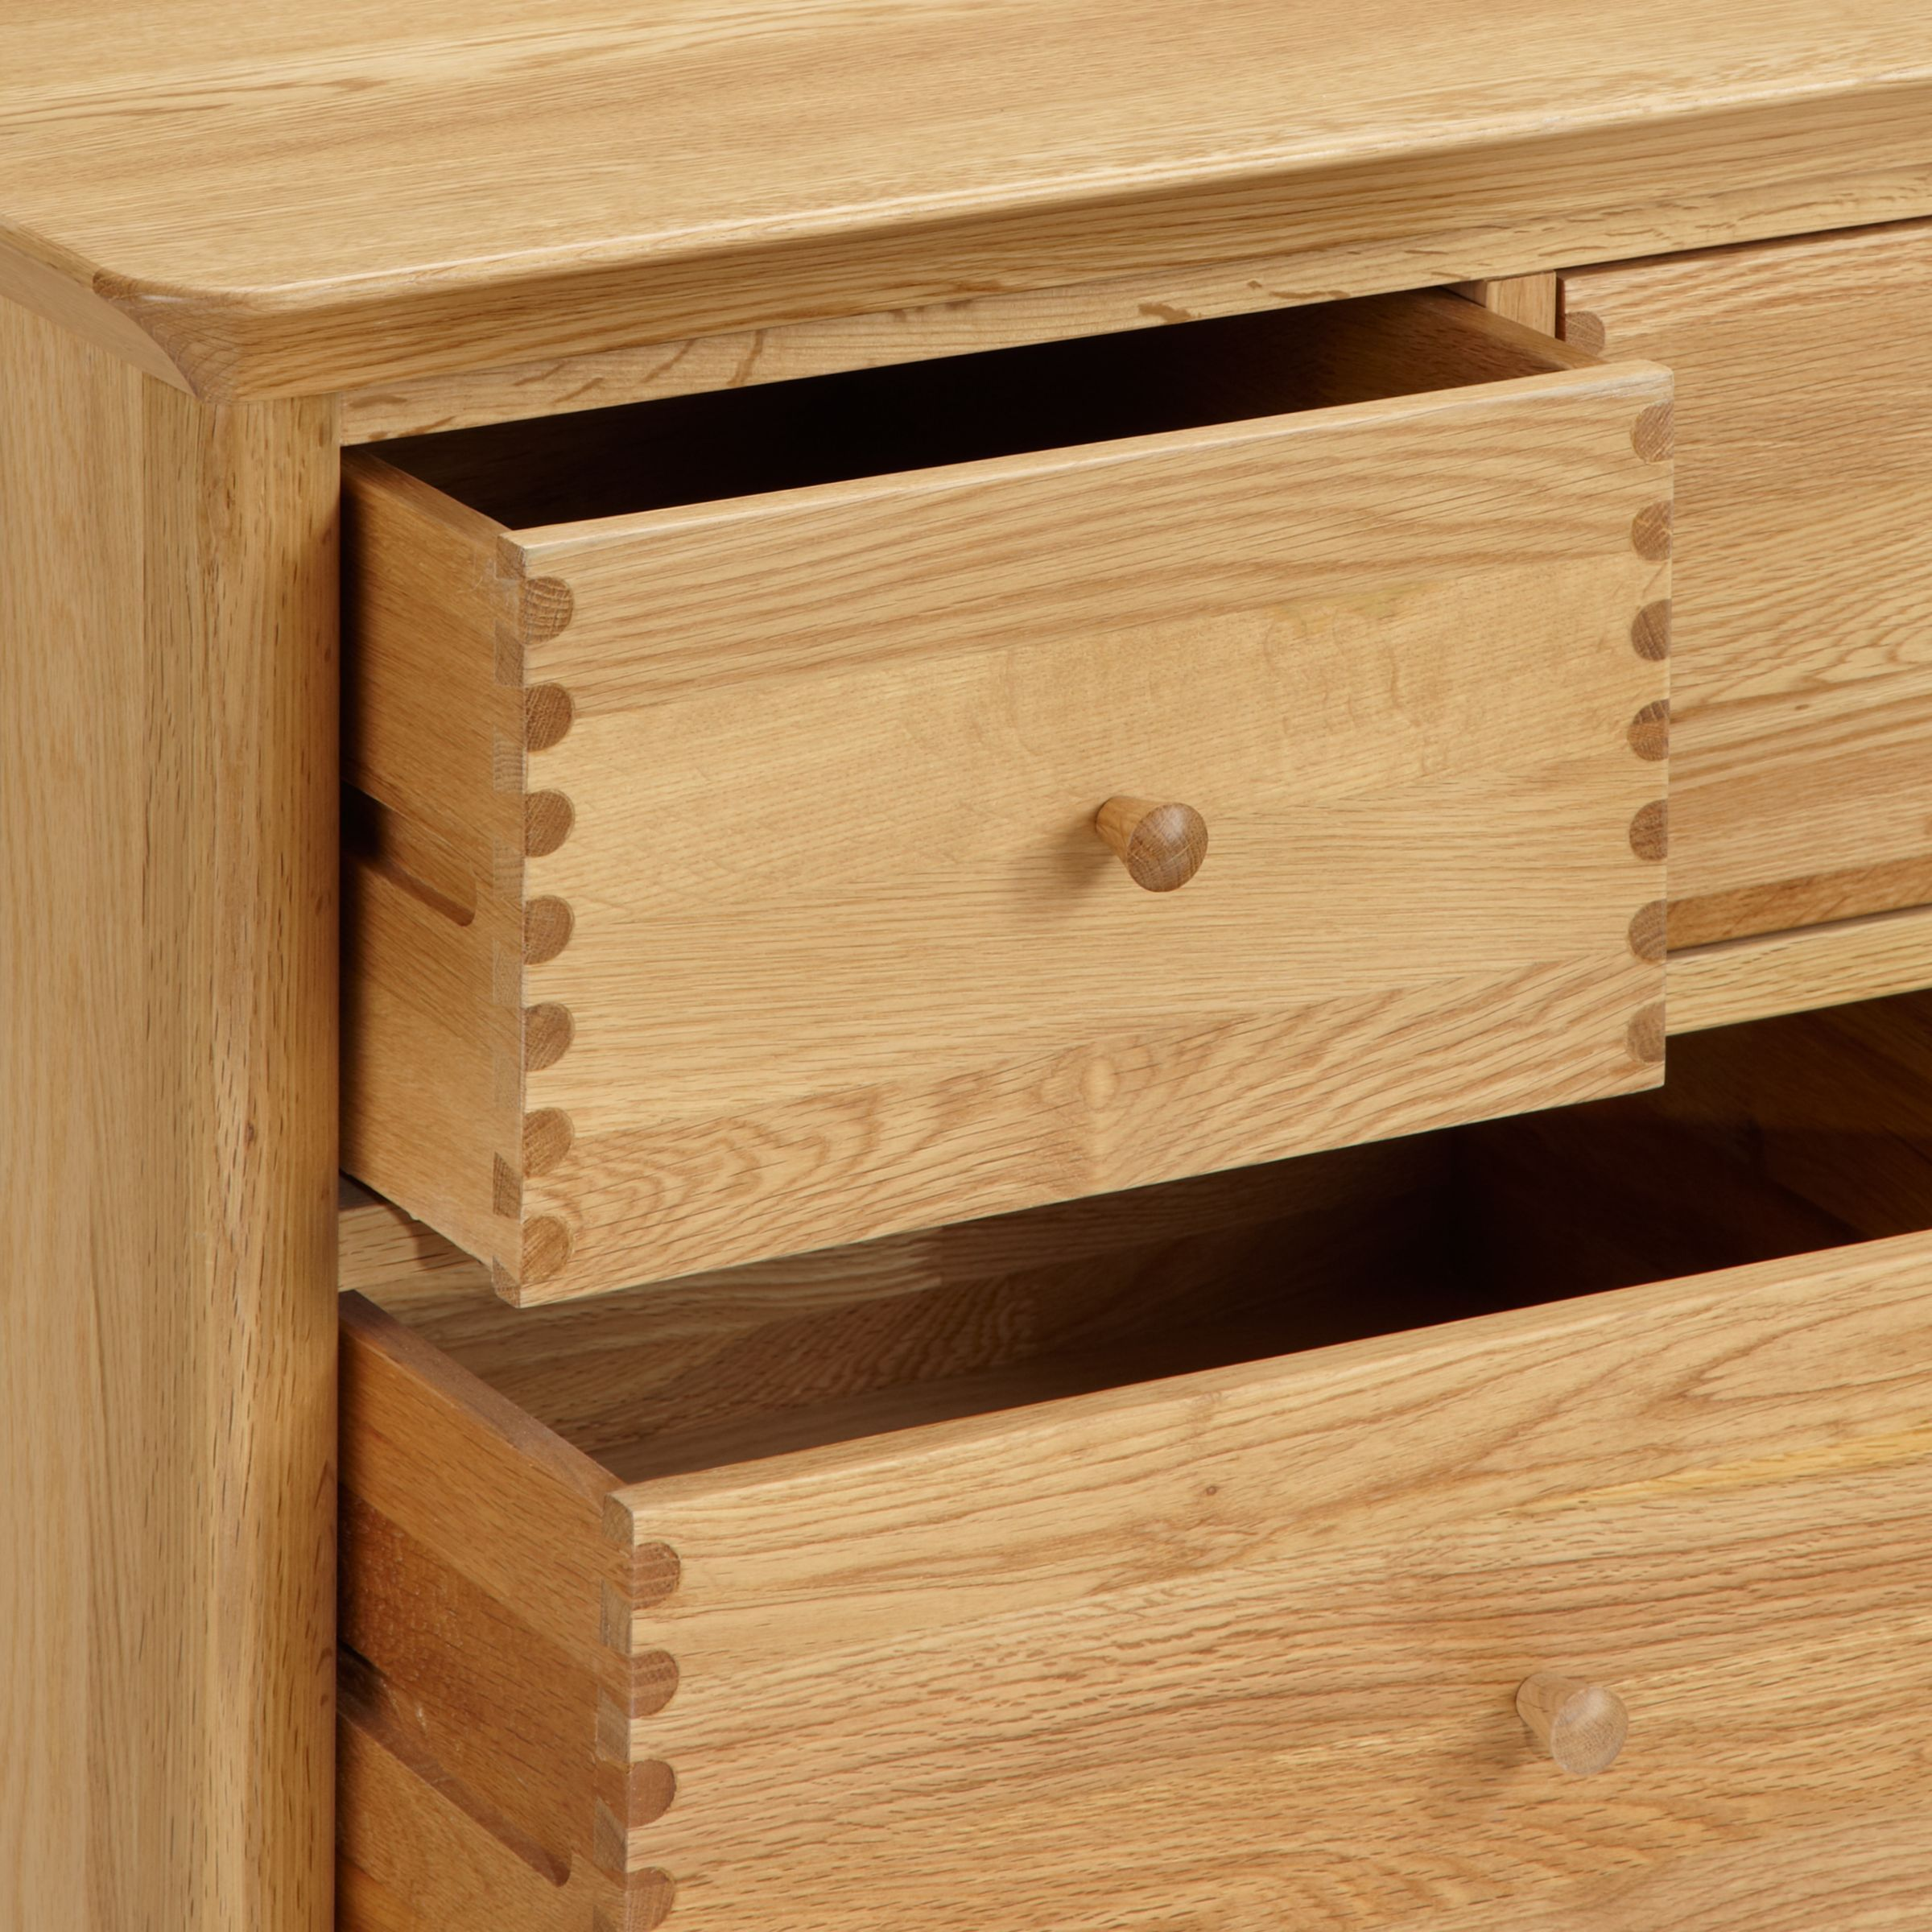 John Lewis & Partners Essence 6 Drawer Chest of Drawers